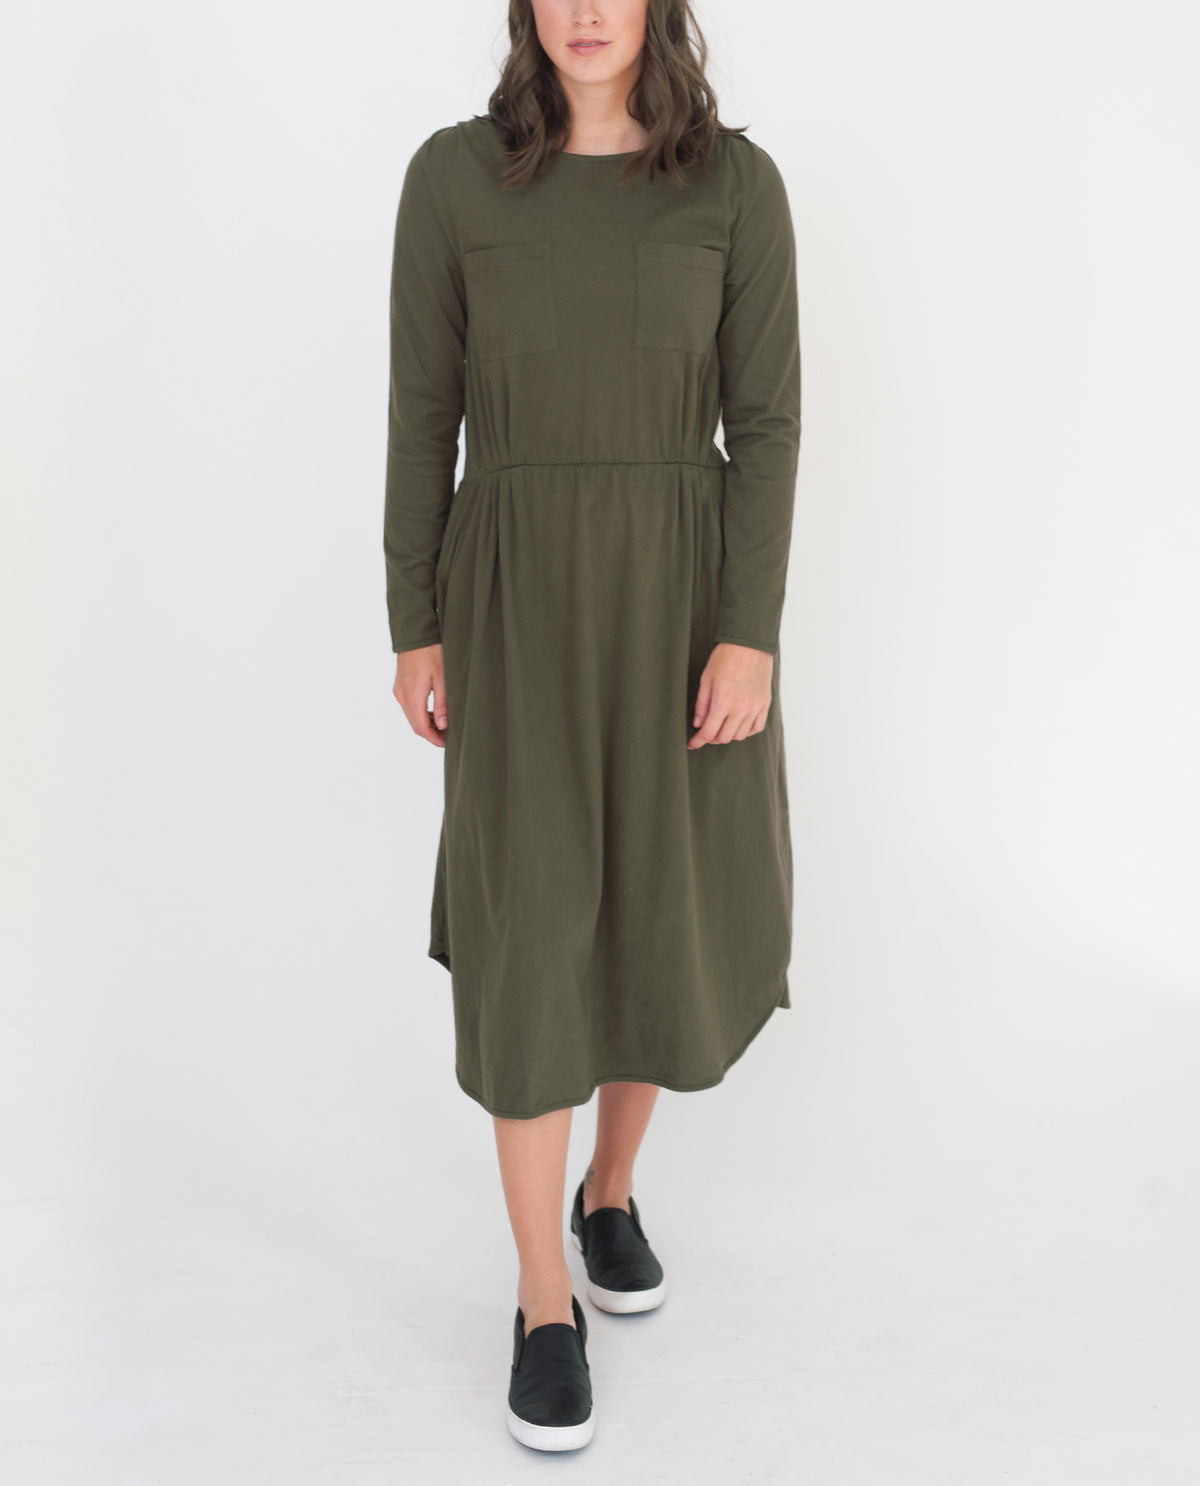 JENNA Organic Cotton Dress In Black